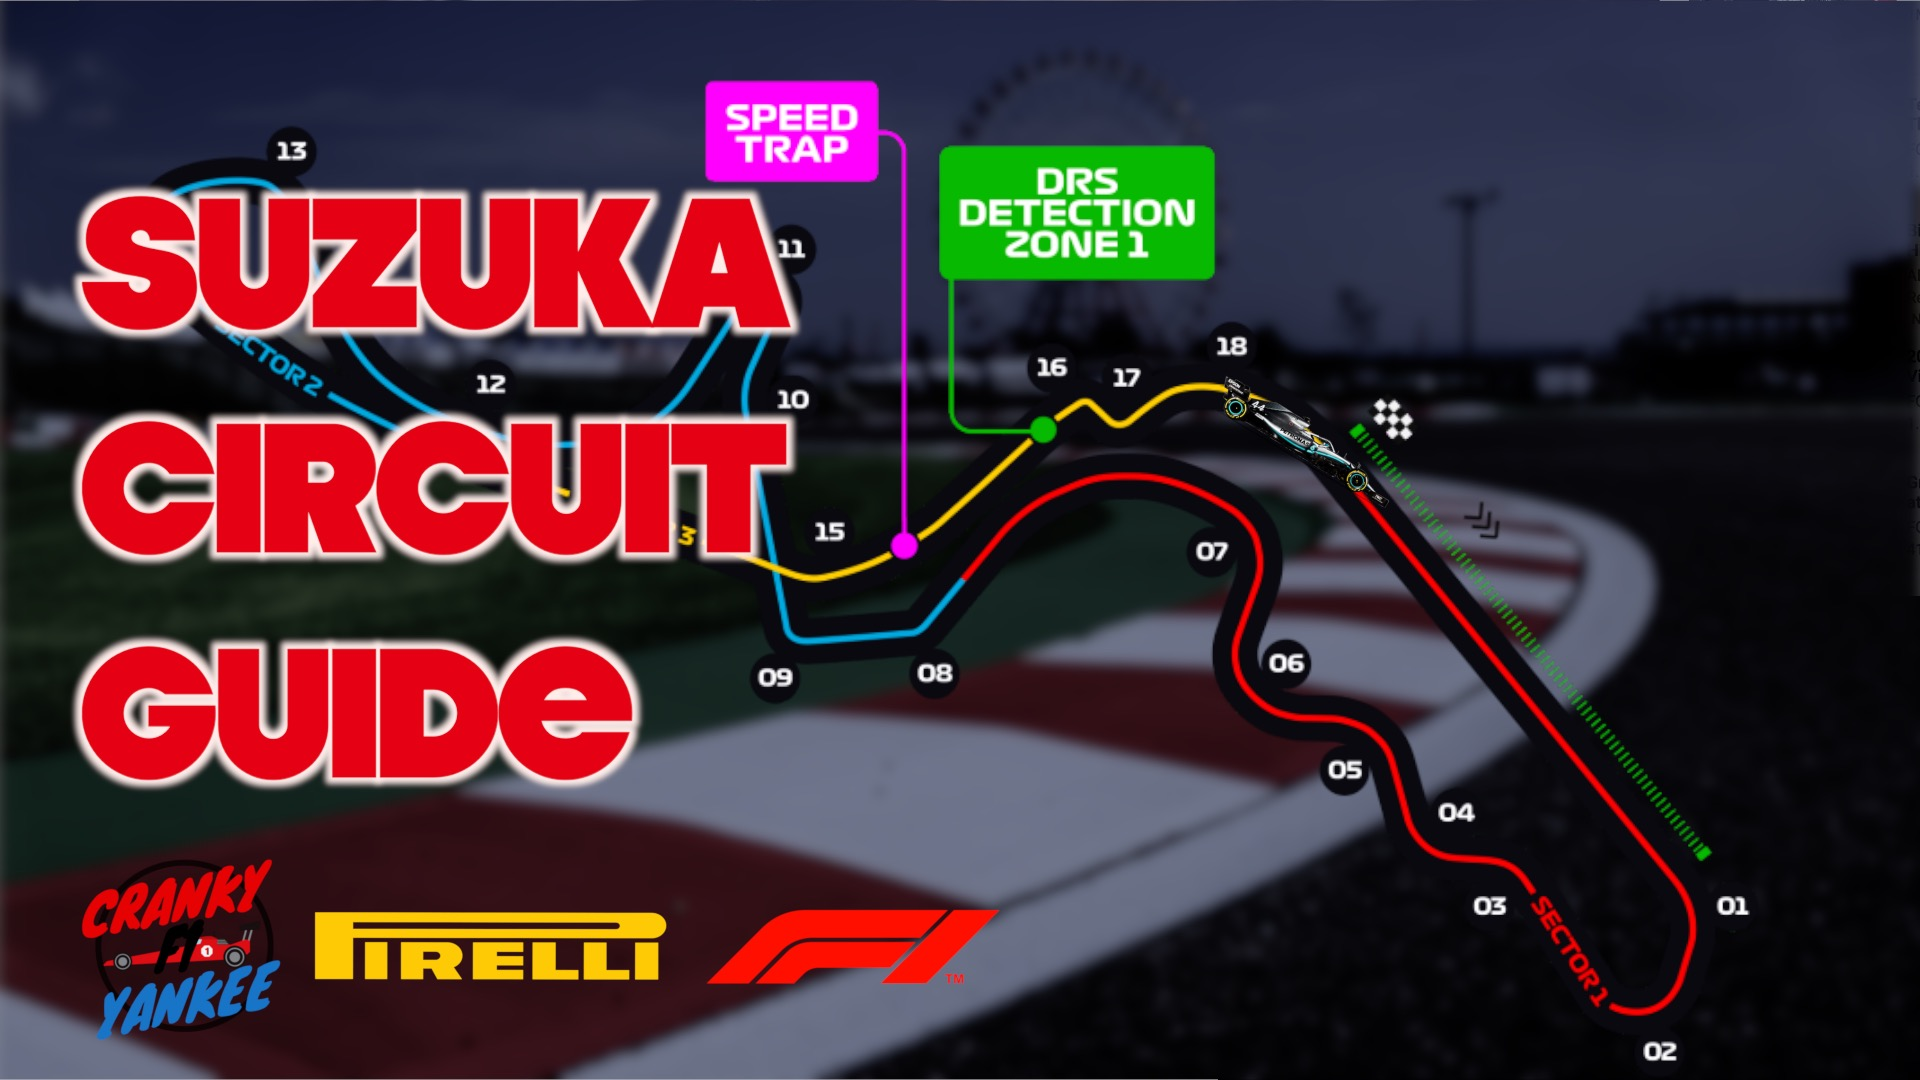 Japanese Grand Prix Suzuka Circuit Guide: Technical Analysis